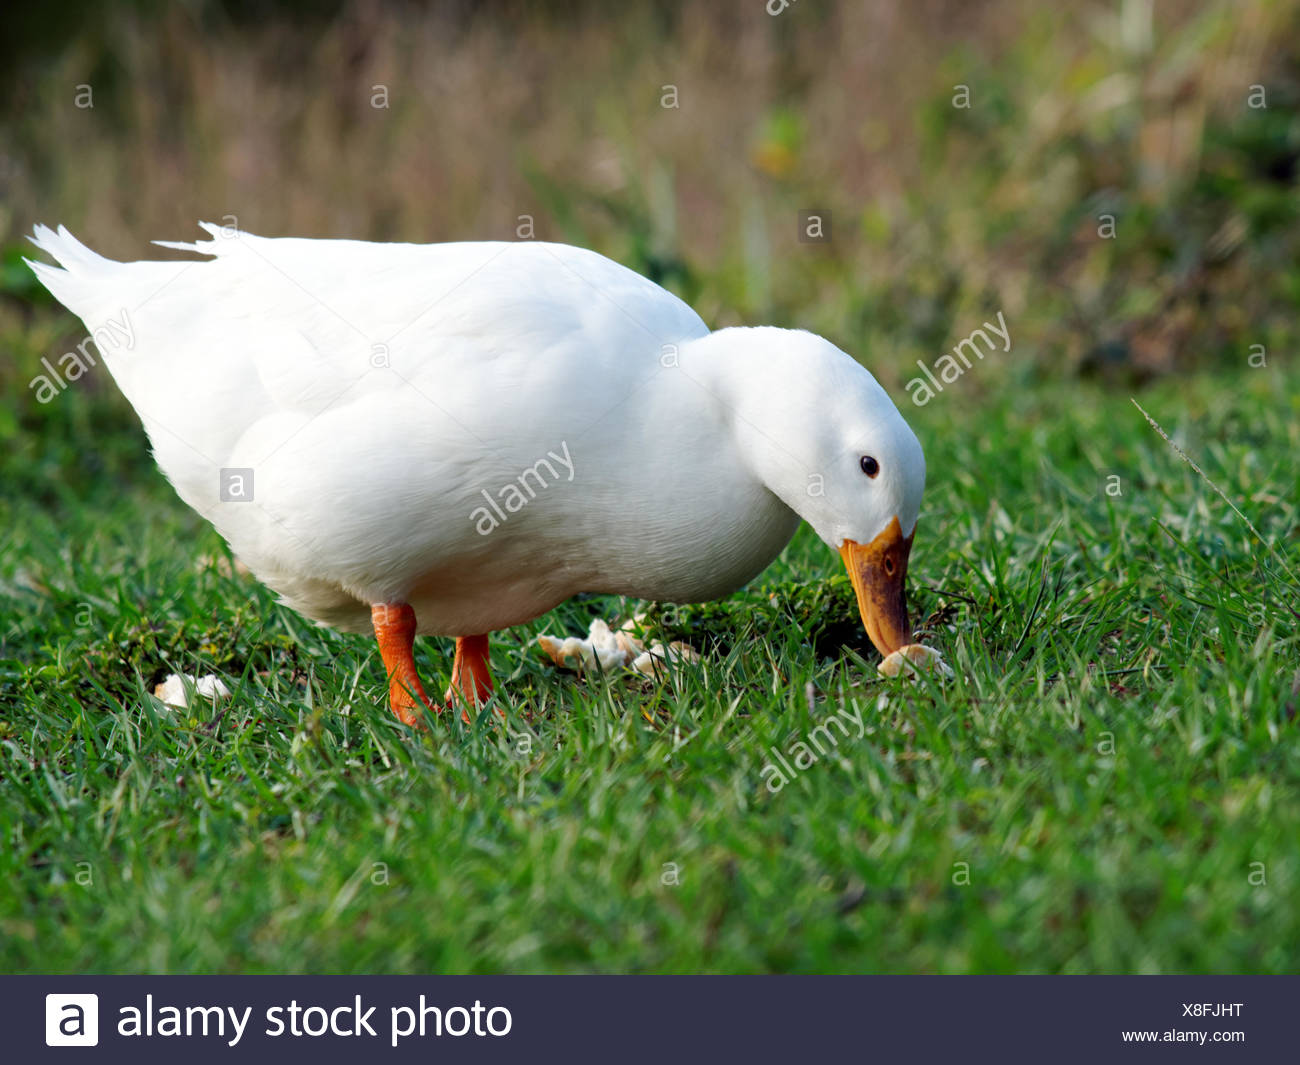 American Pekin Duck with bread on grass in a park. - Stock Image